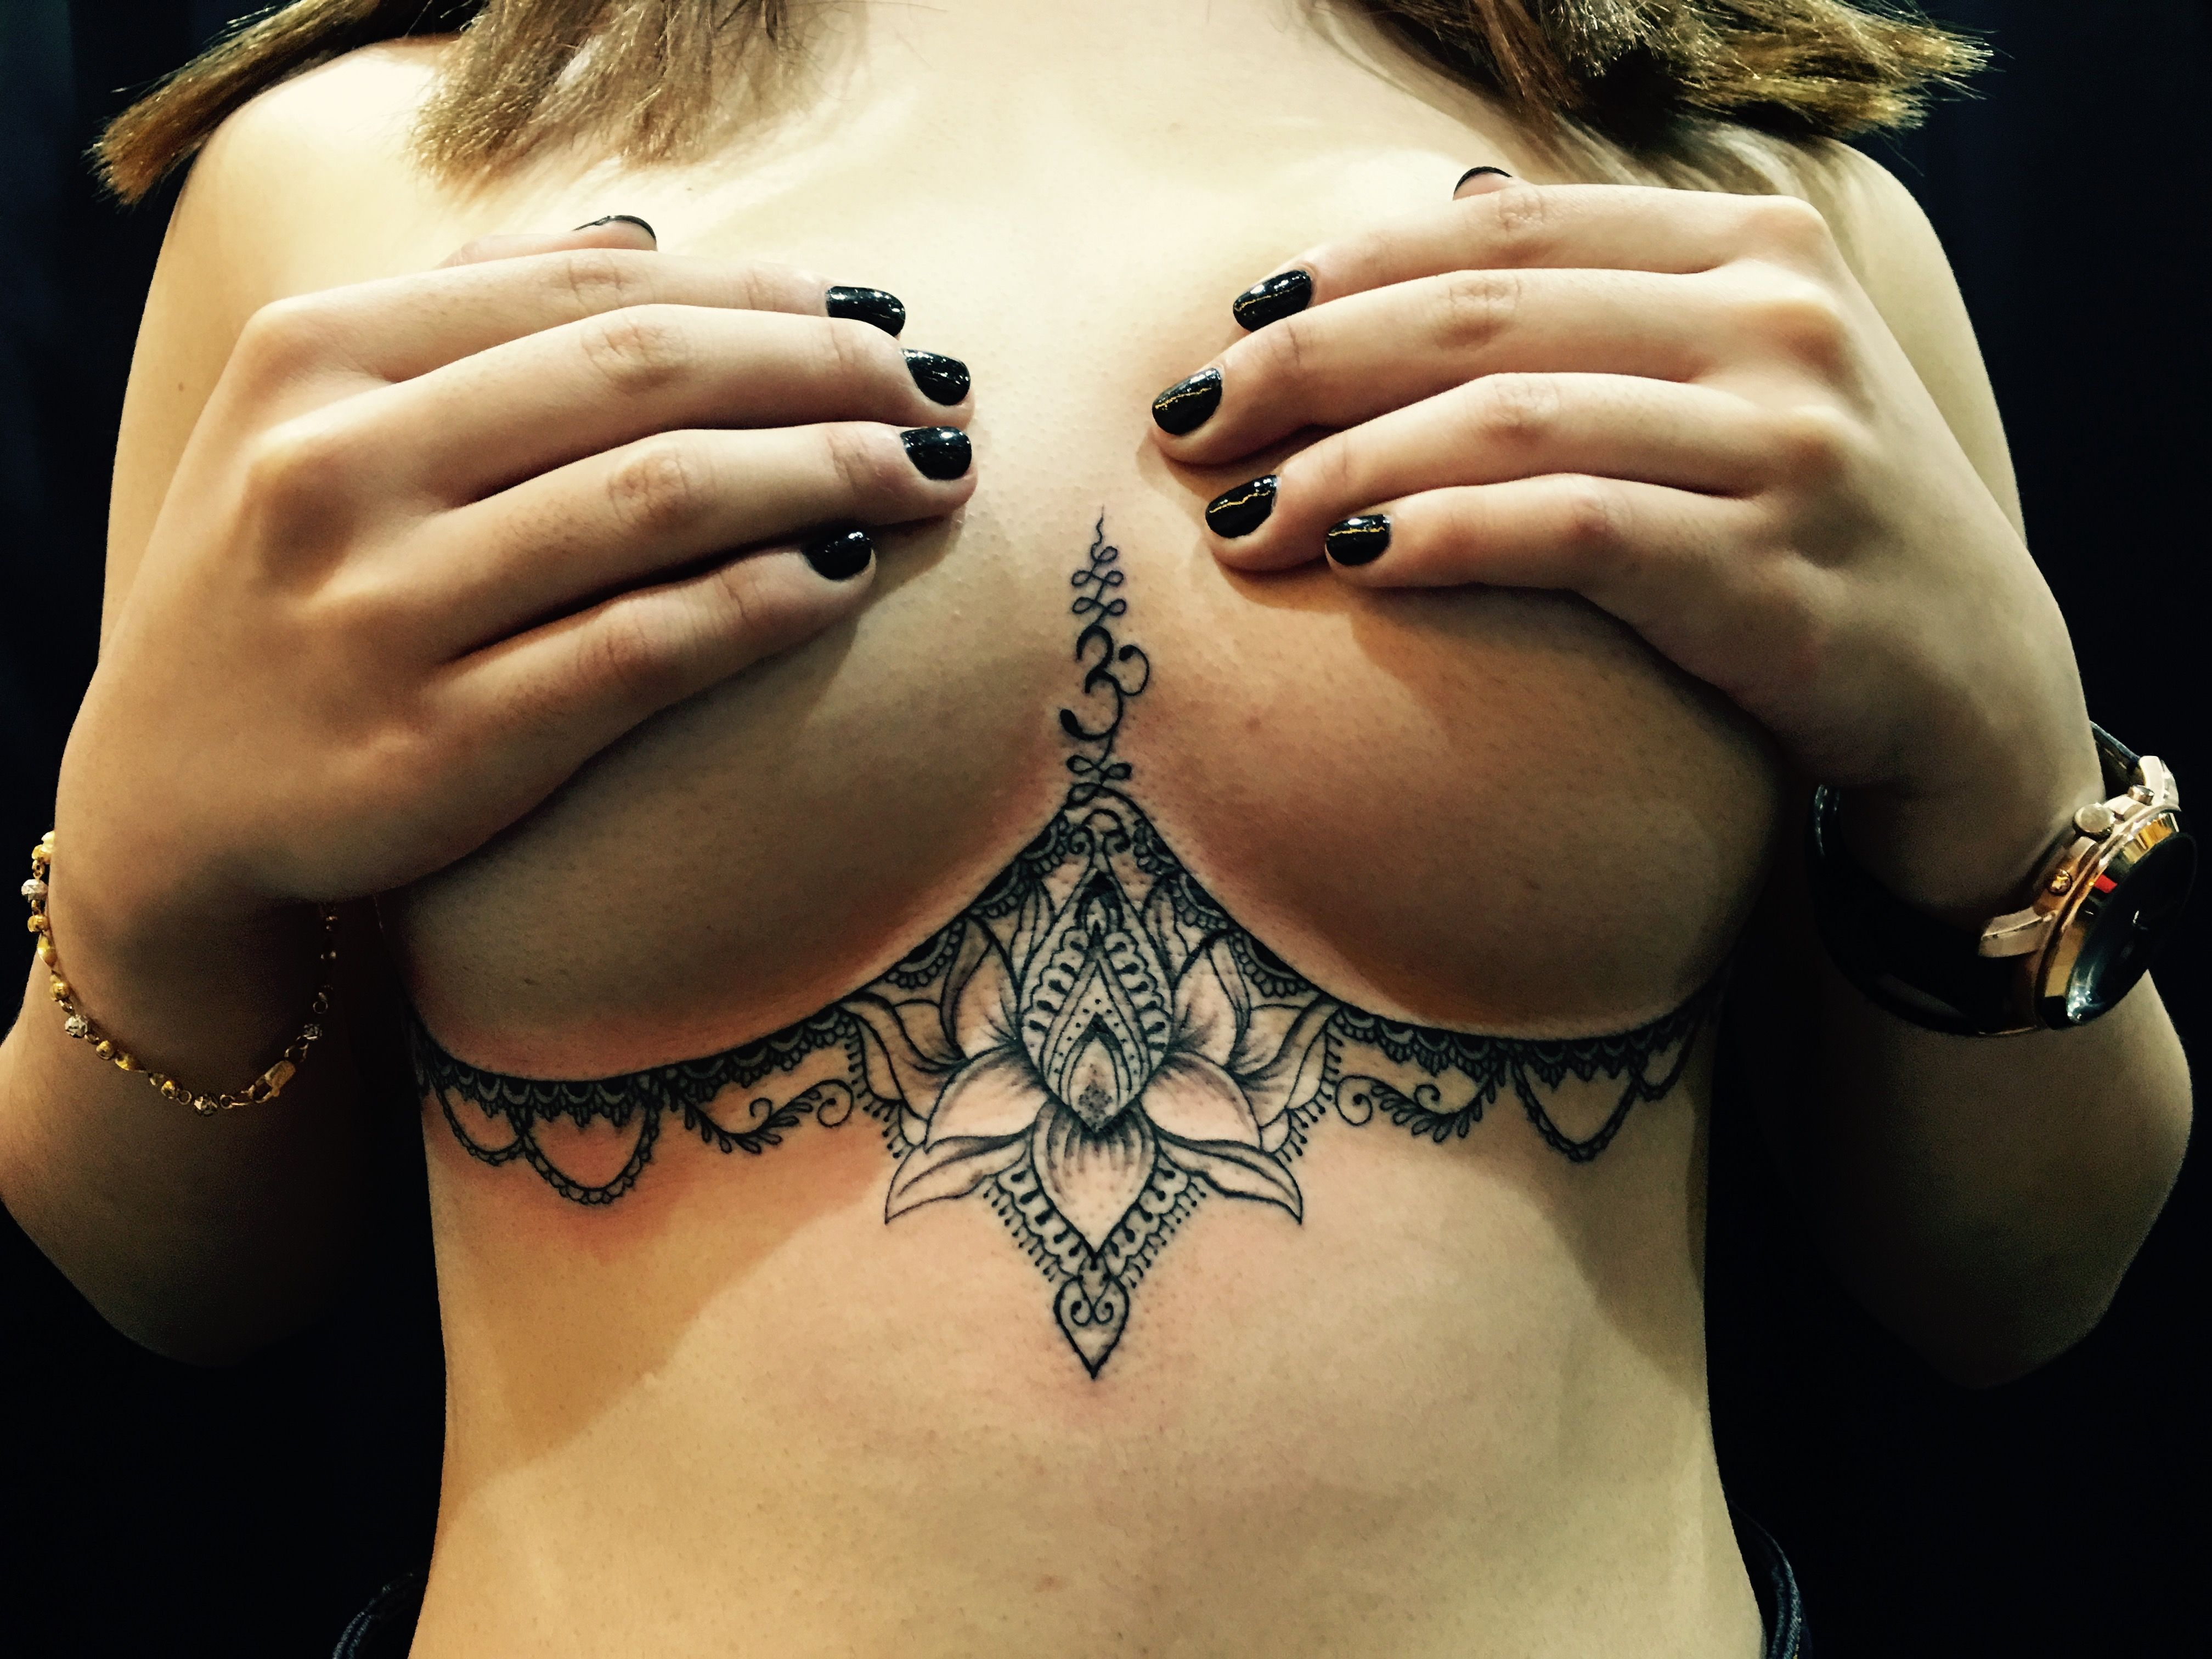 Tattoo And Body Piercing Shops Near Me